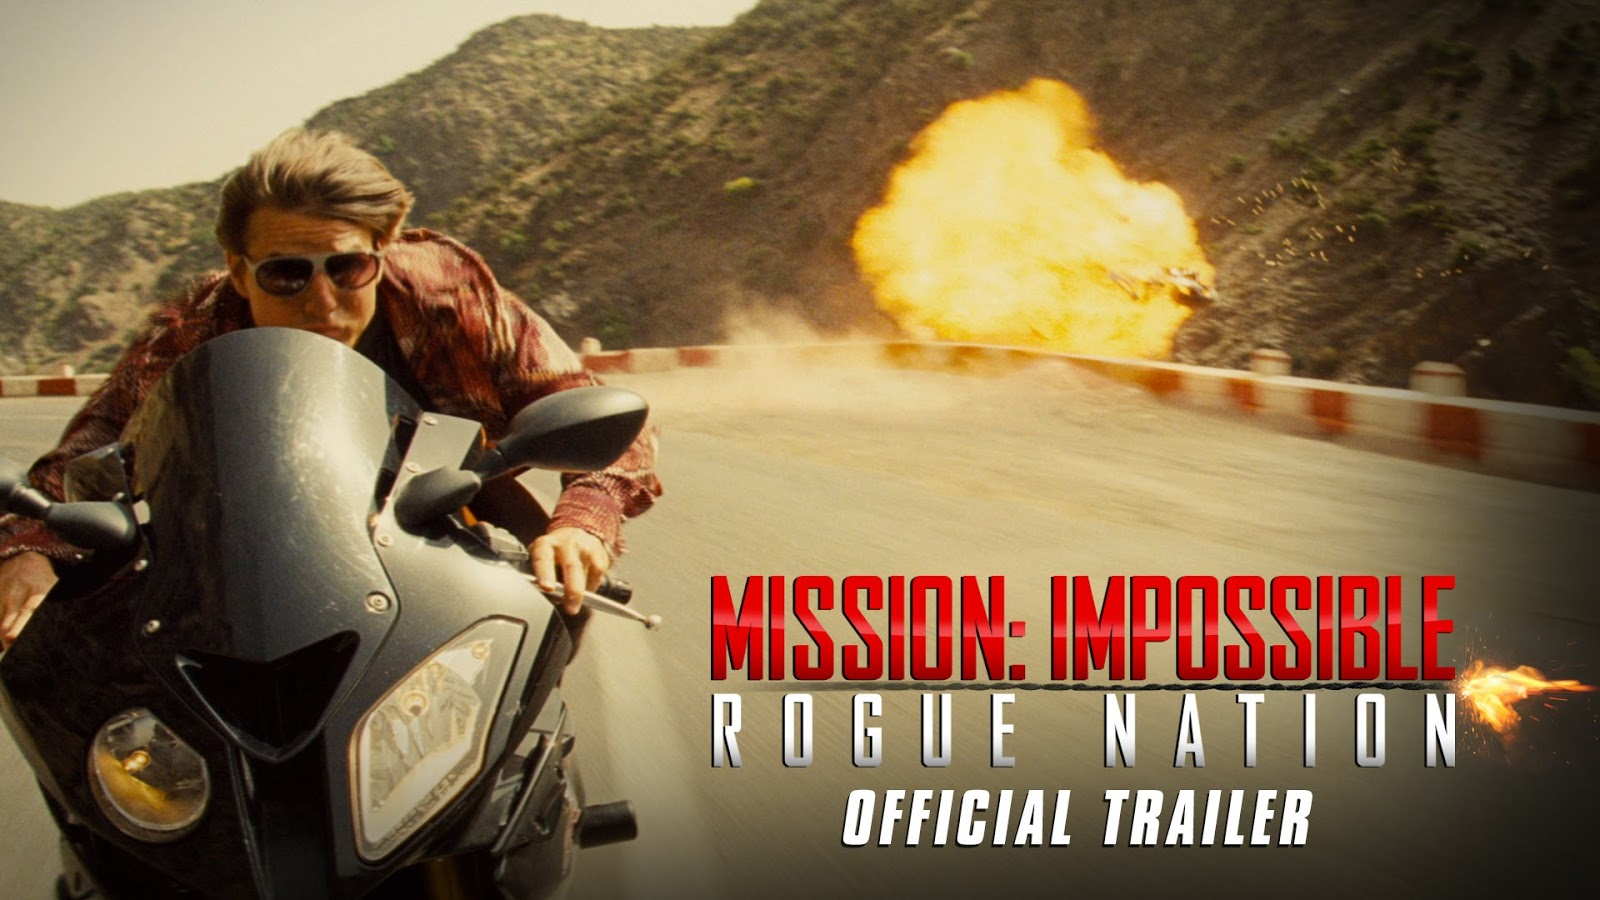 Mission: Impossible 5 – Rogue Nation Full Movie Download